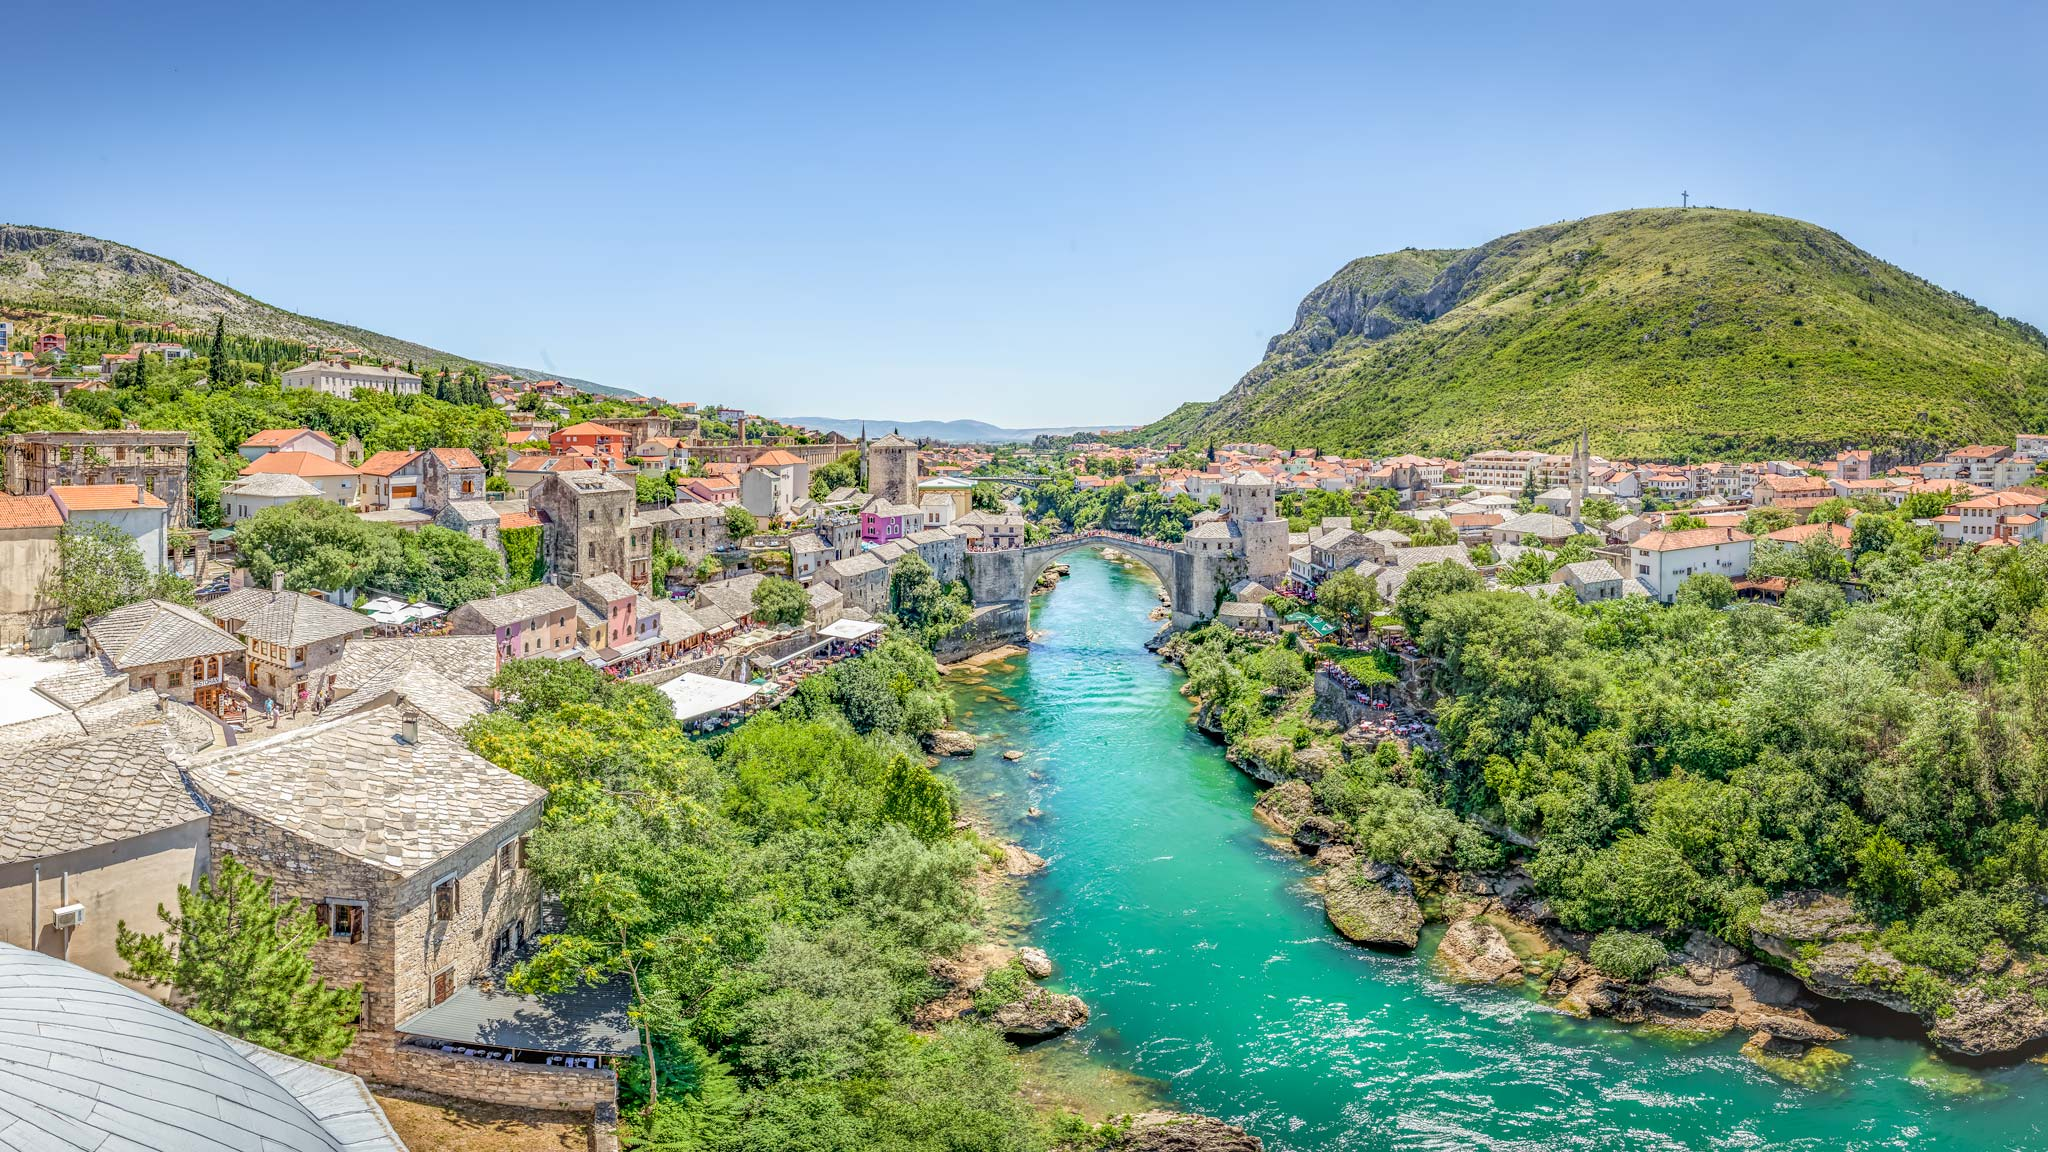 Stari Most Bosnia Herzegovina